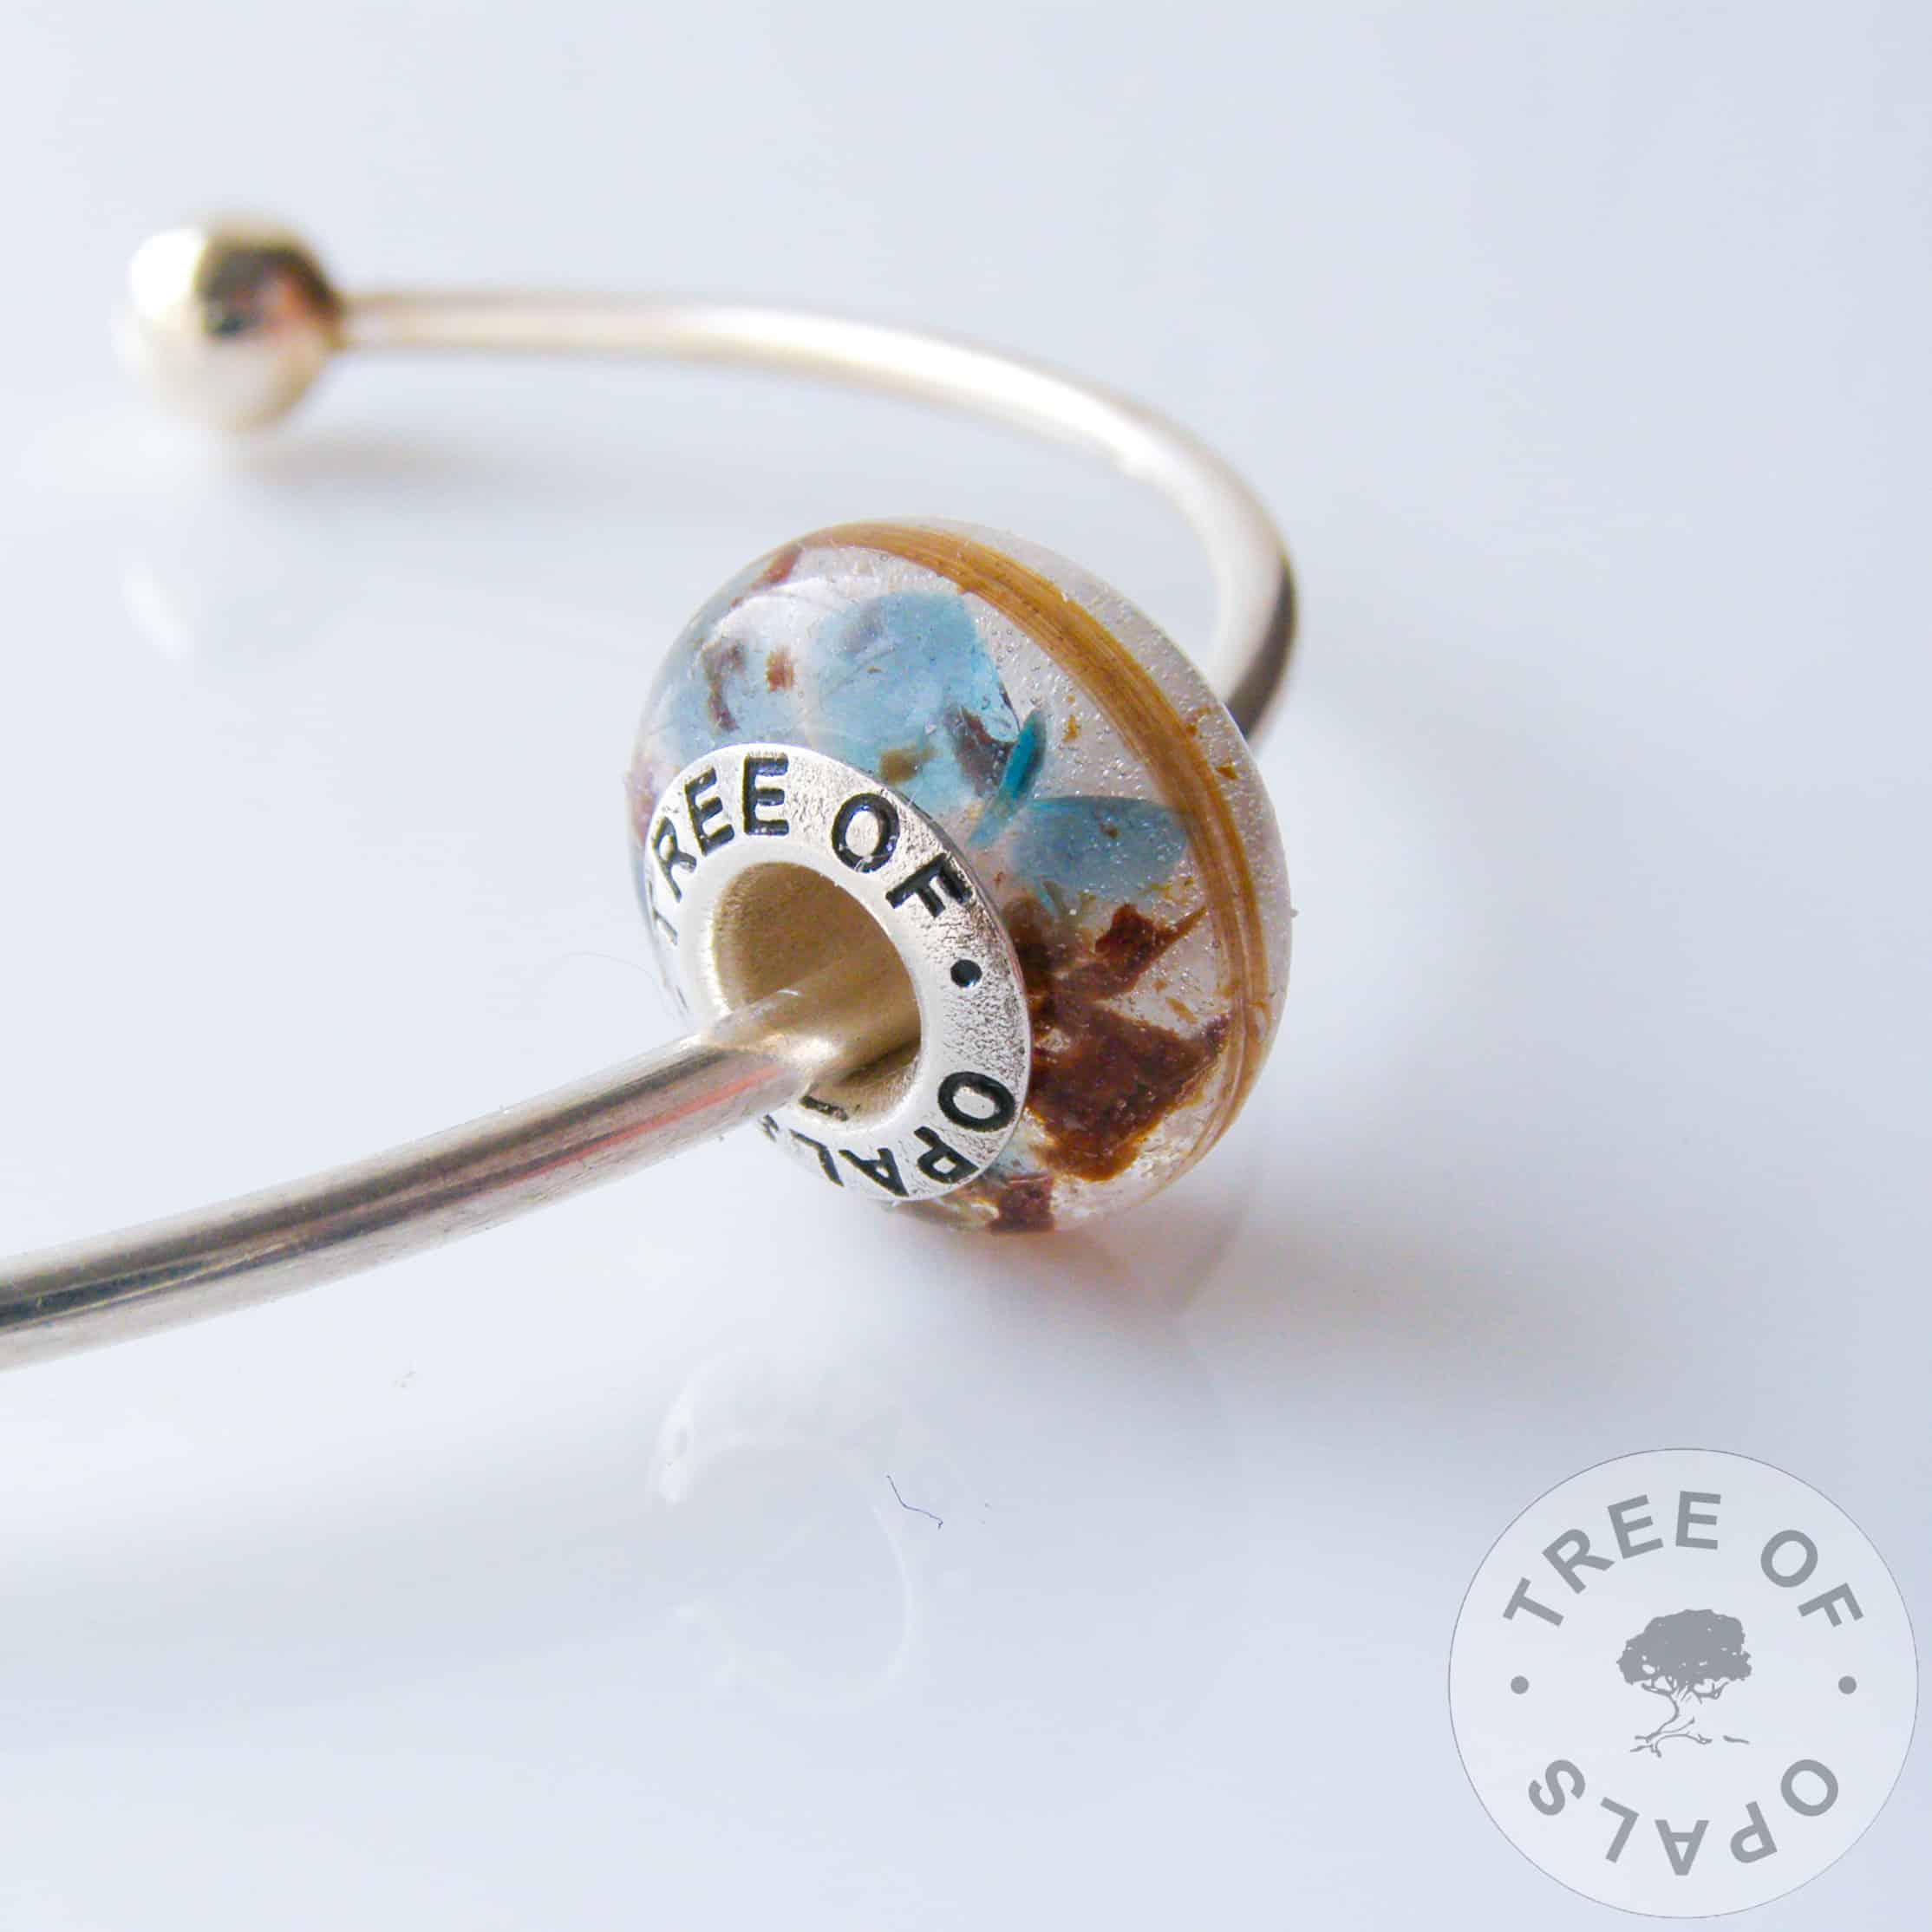 hair and umbilical cord charm bead with blue topaz december birthstone with solid Sterling silver Tree of Opals core, clear resin